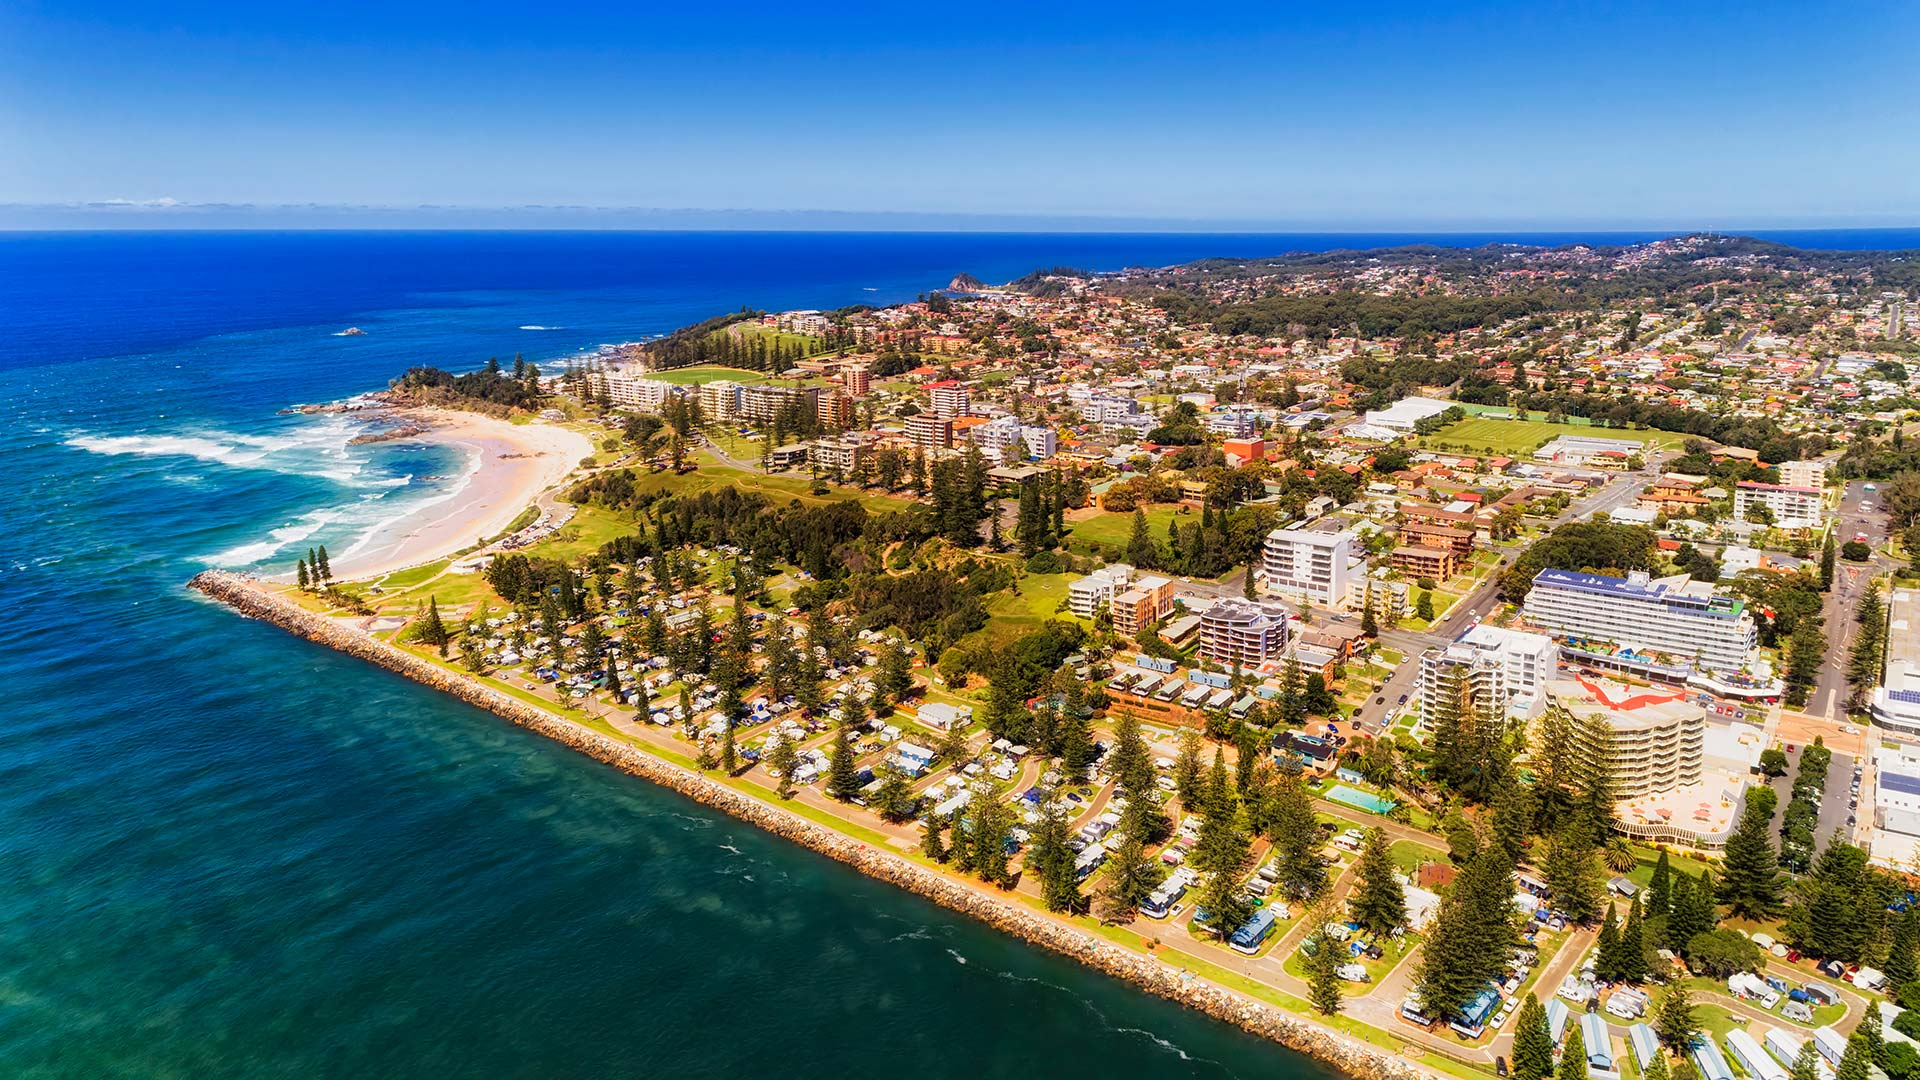 Panorama to illustrate dating in port macquarie